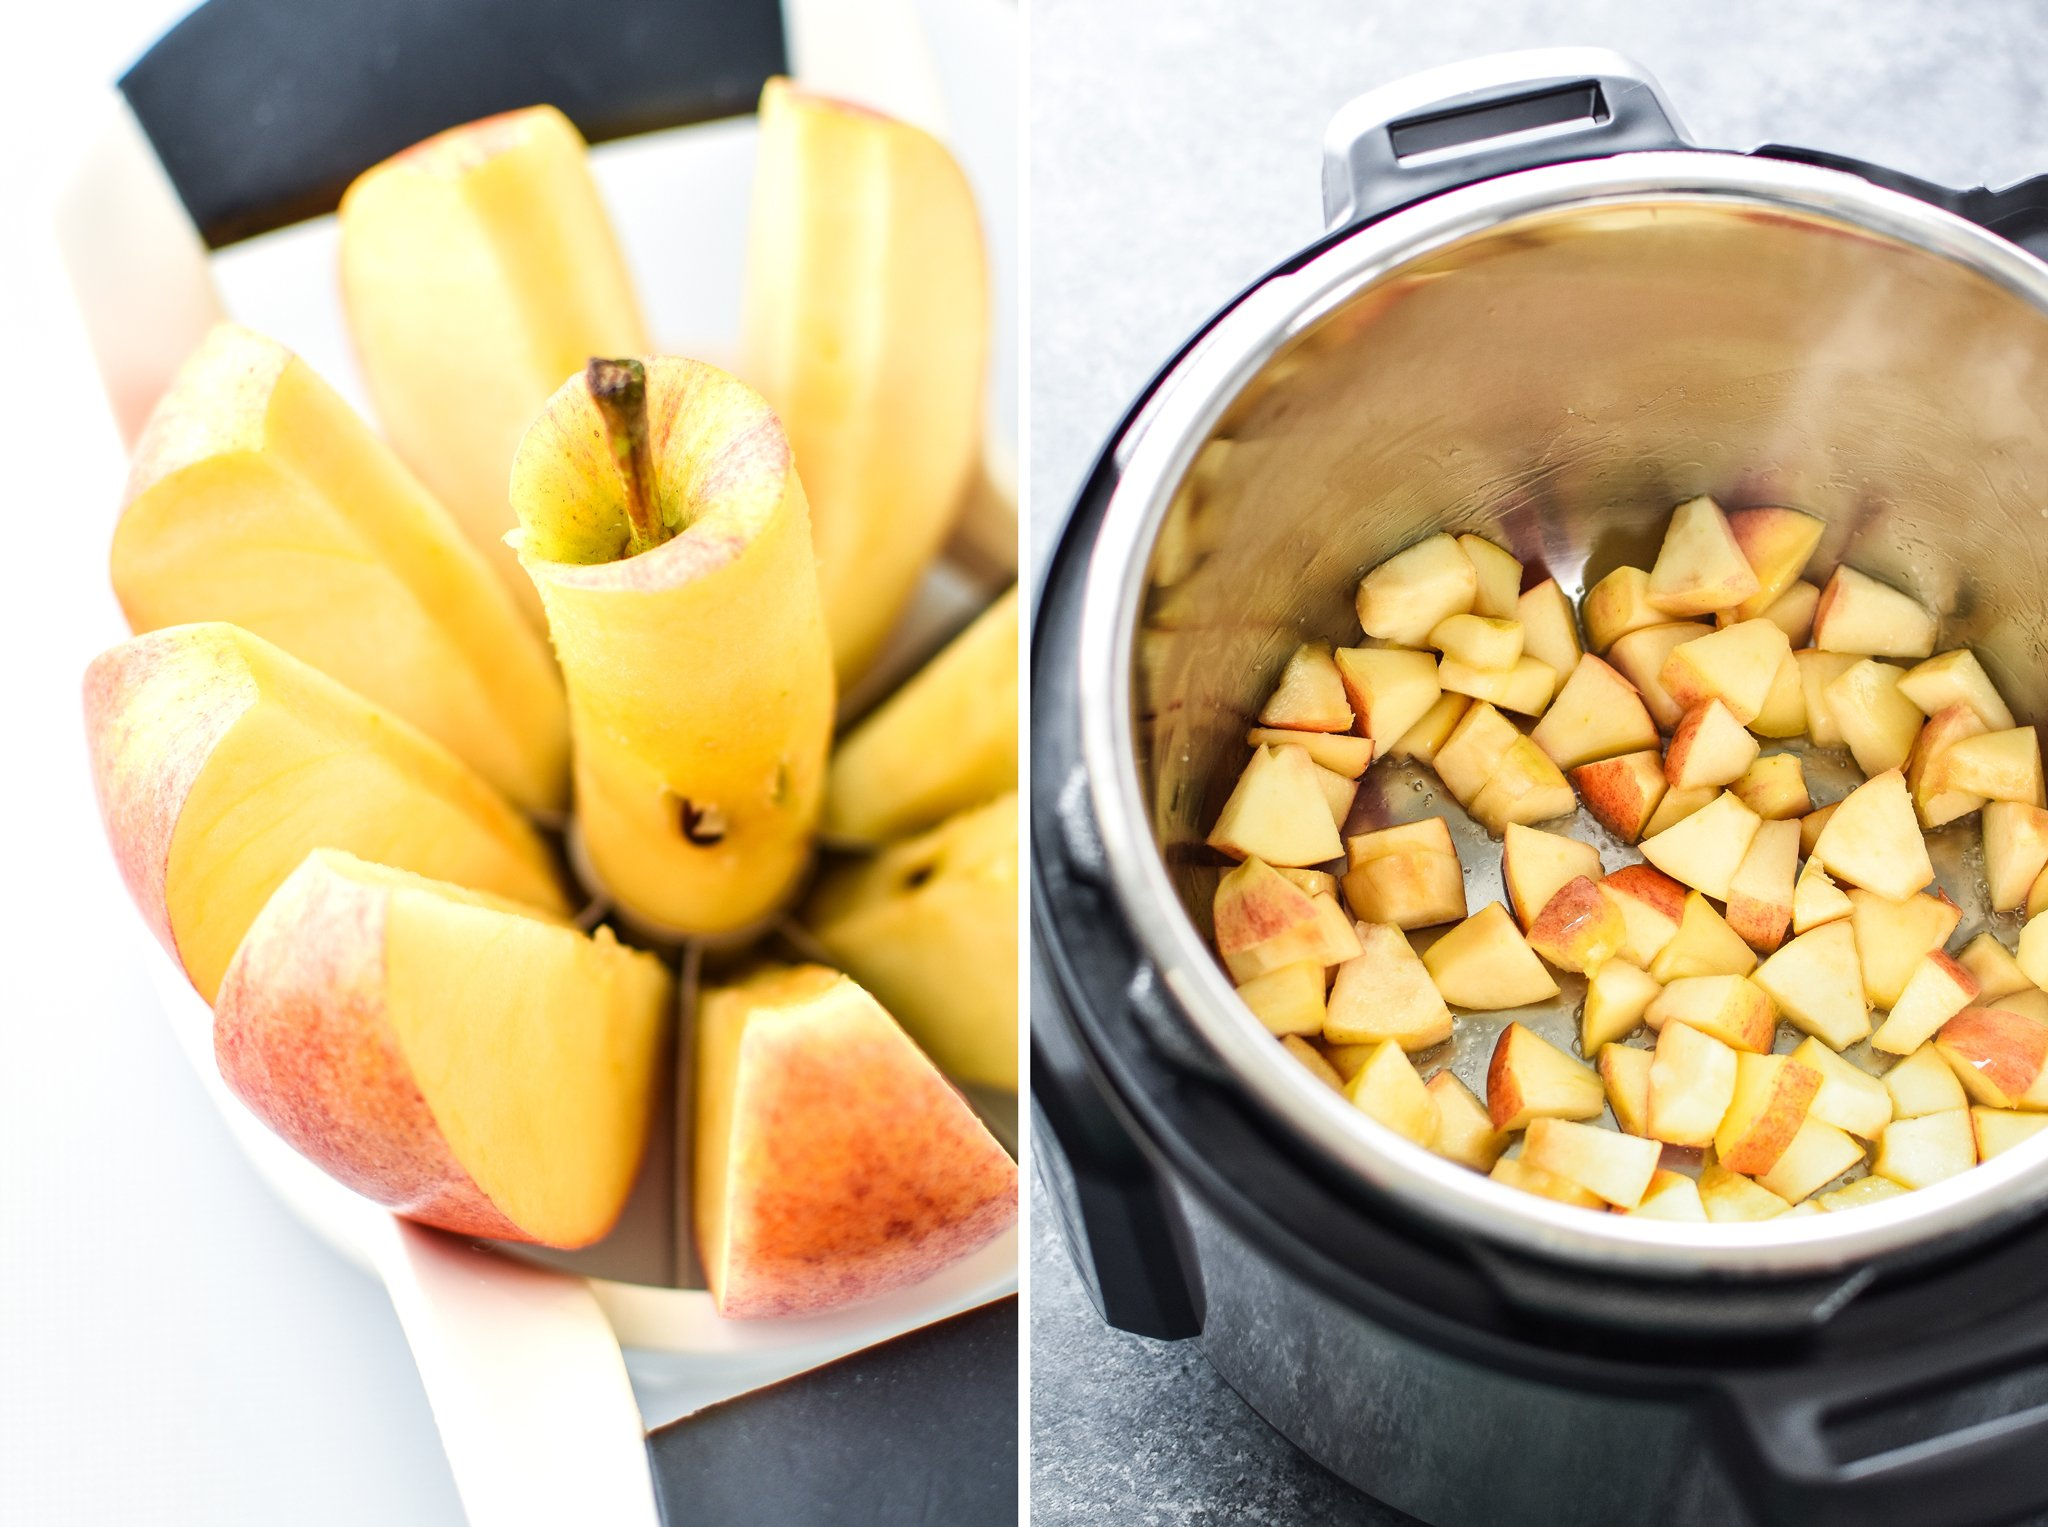 Left: Apple just cut with an apple cutter. Right: Cut apples cooking on saute in the Instant Pot.